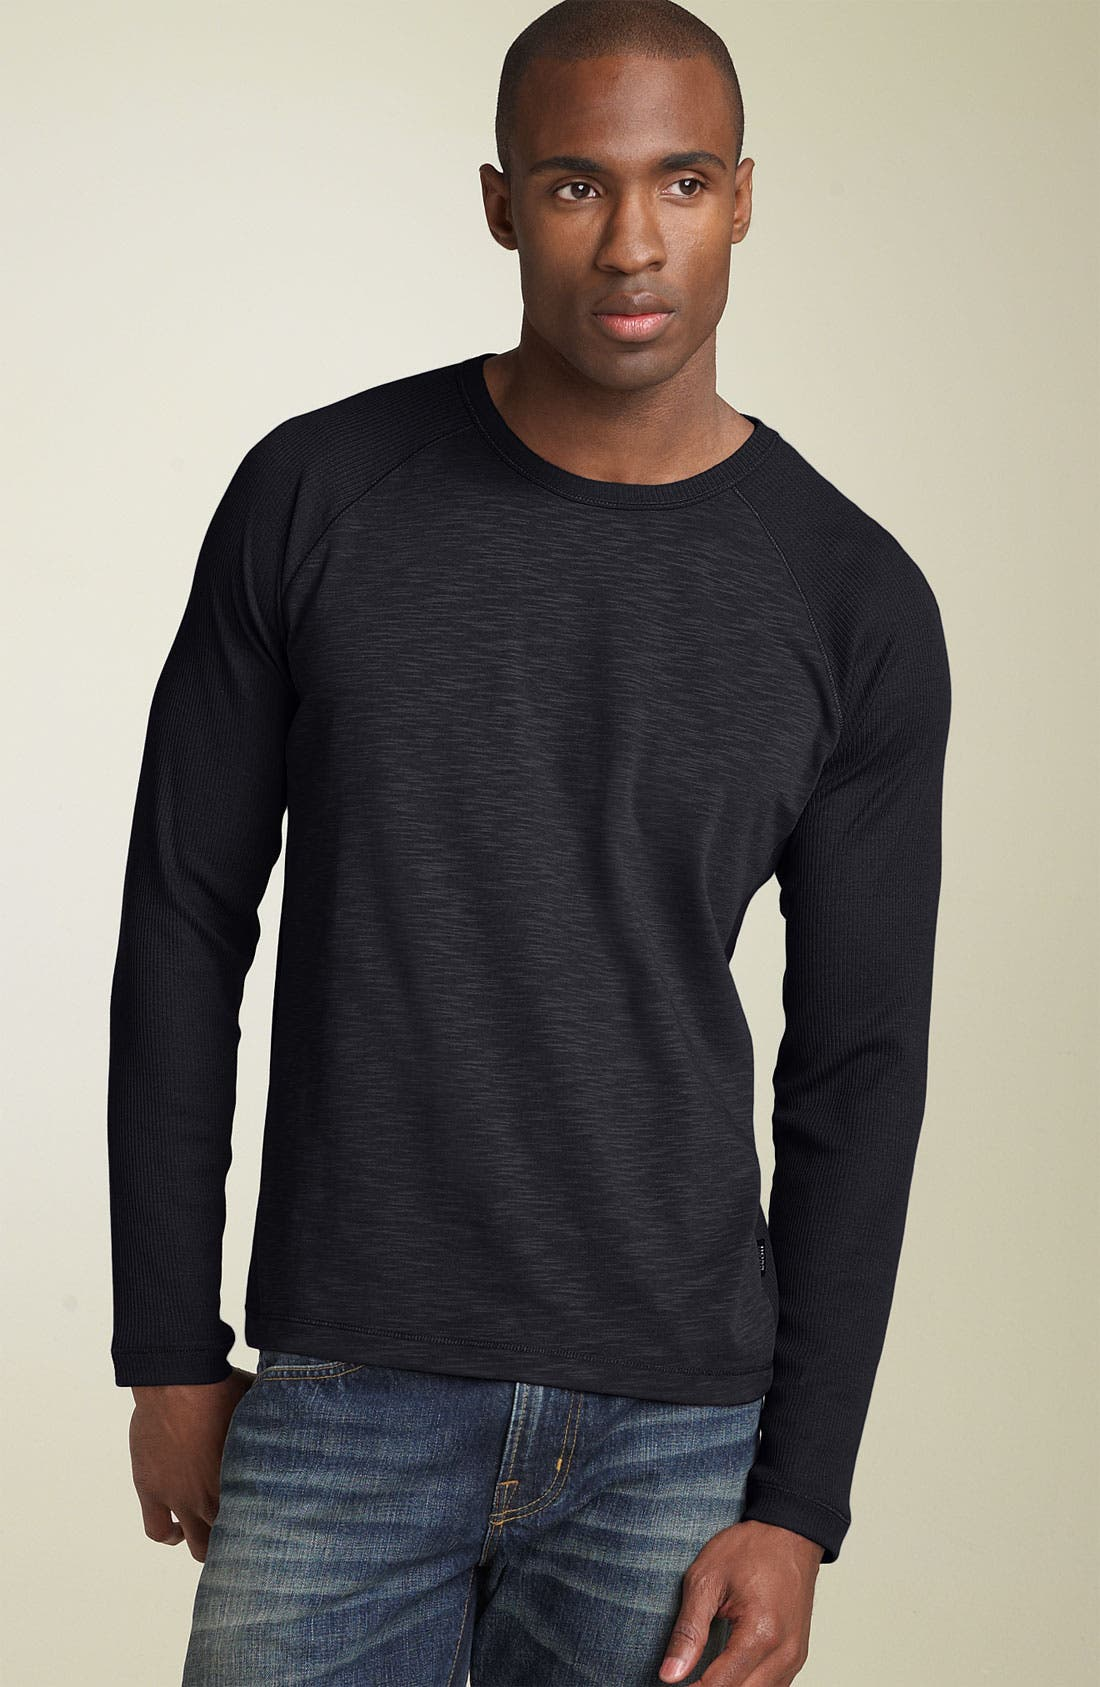 Alternate Image 1 Selected - BOSS Black 'Sassari' Regular Fit Crewneck T-Shirt